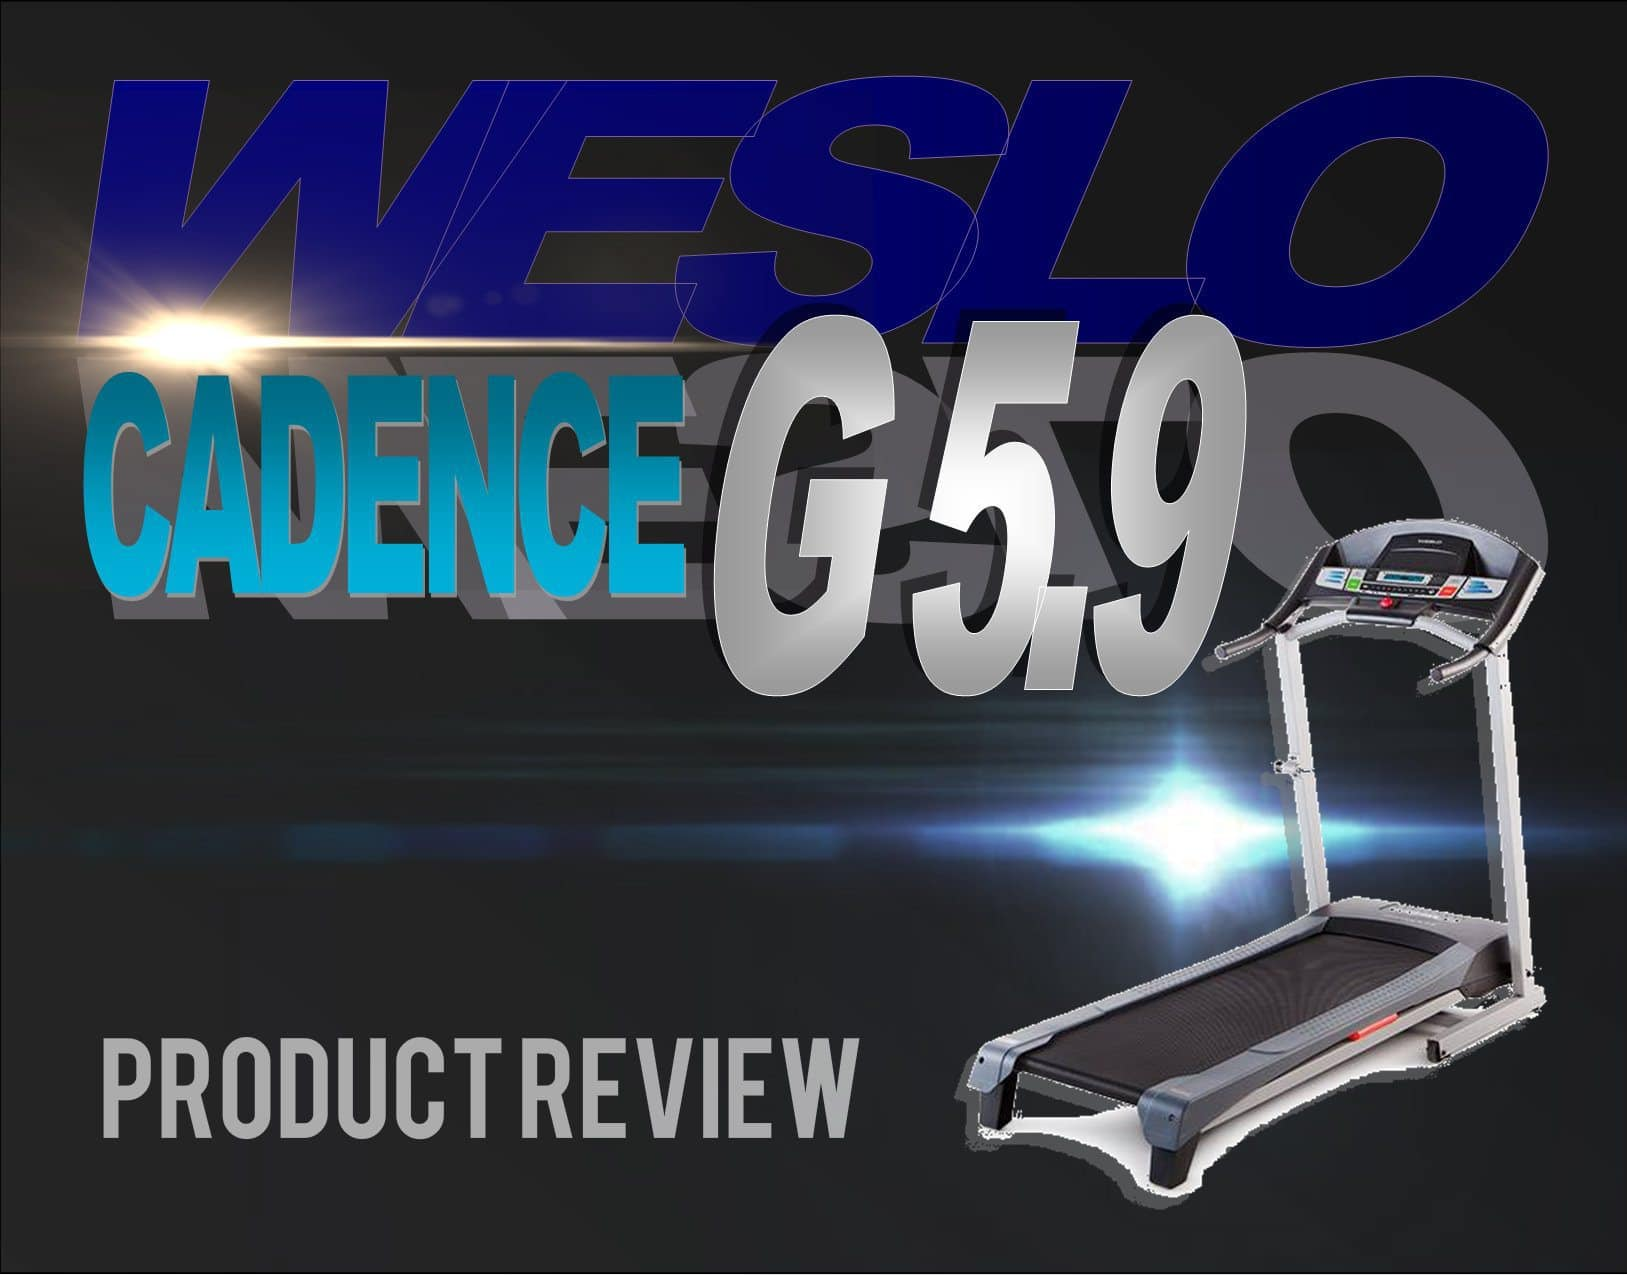 Weslo Cadence G 5.9 product review